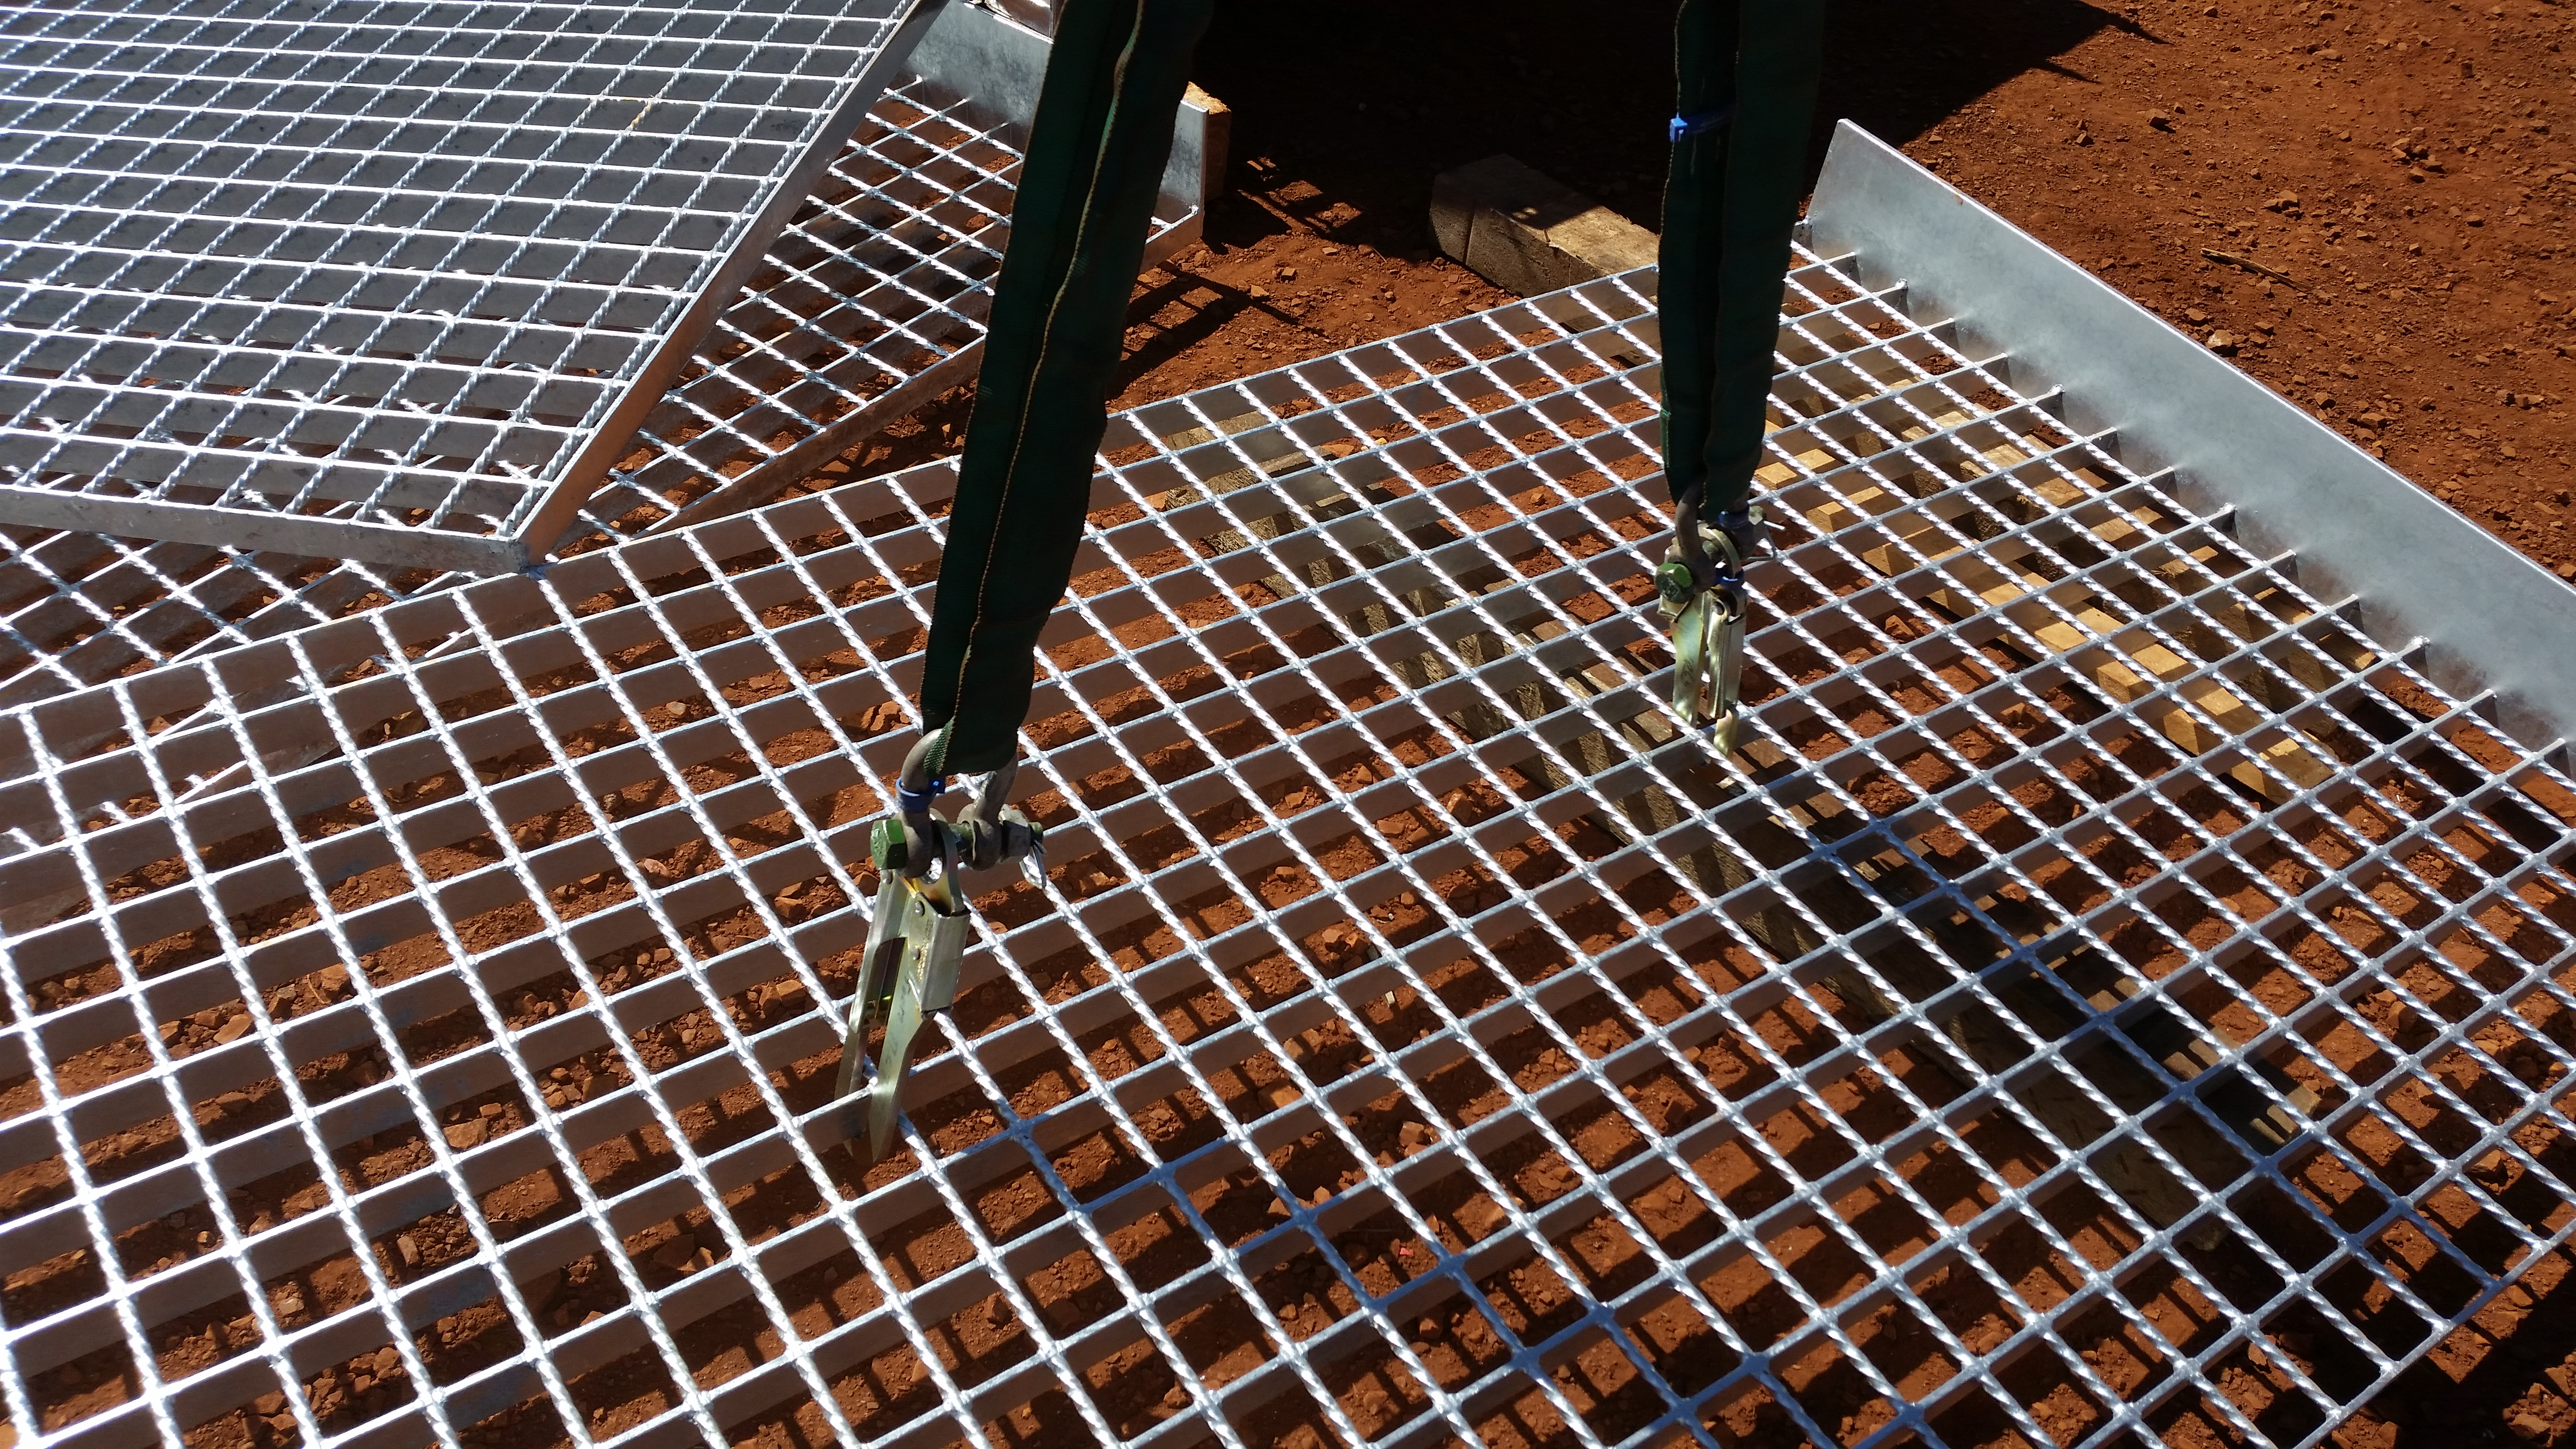 The Gridhook Gold Walkway Grating Lifter Or Gridmesh